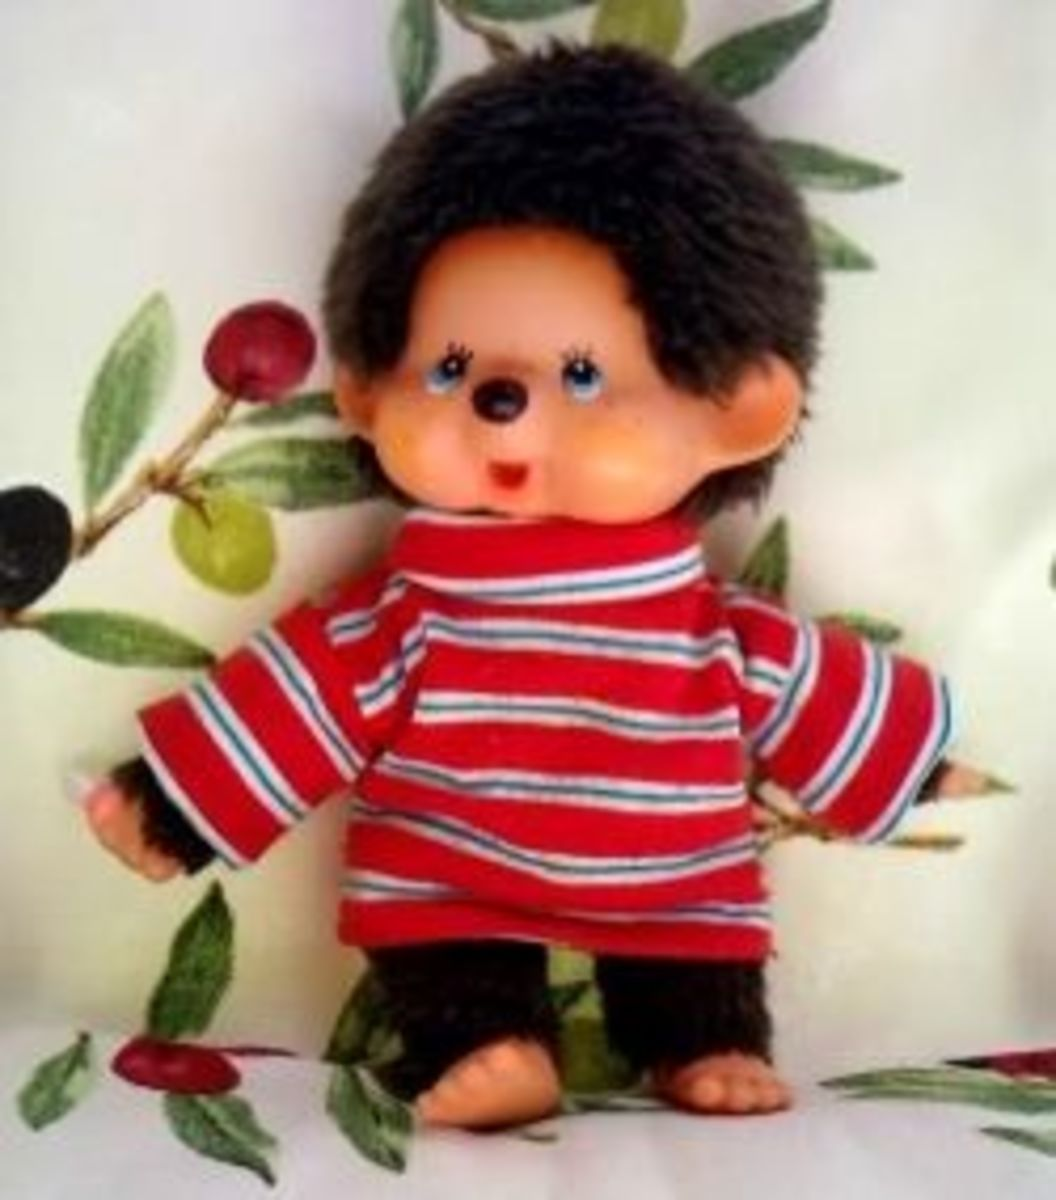 Collectors guide for Sekiguchi Monchhichi, monchichi plush toys